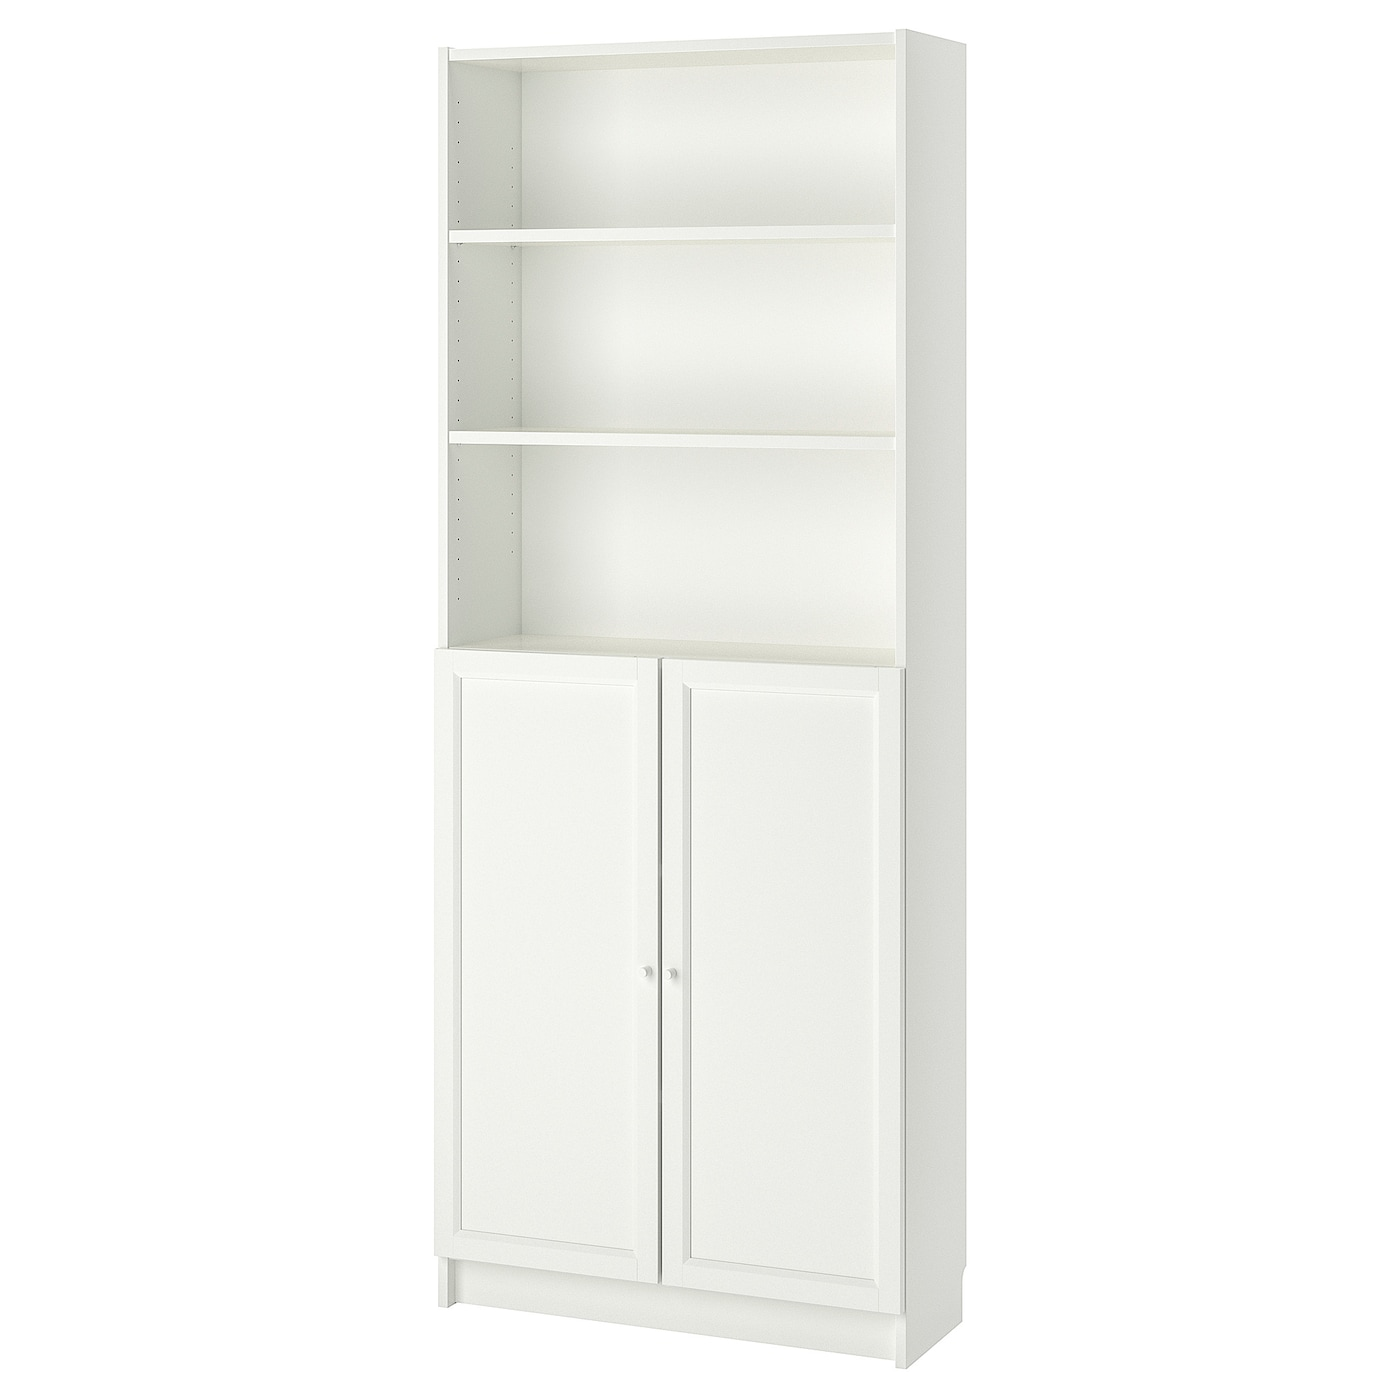 Ikea billy oxberg bookcase with doors